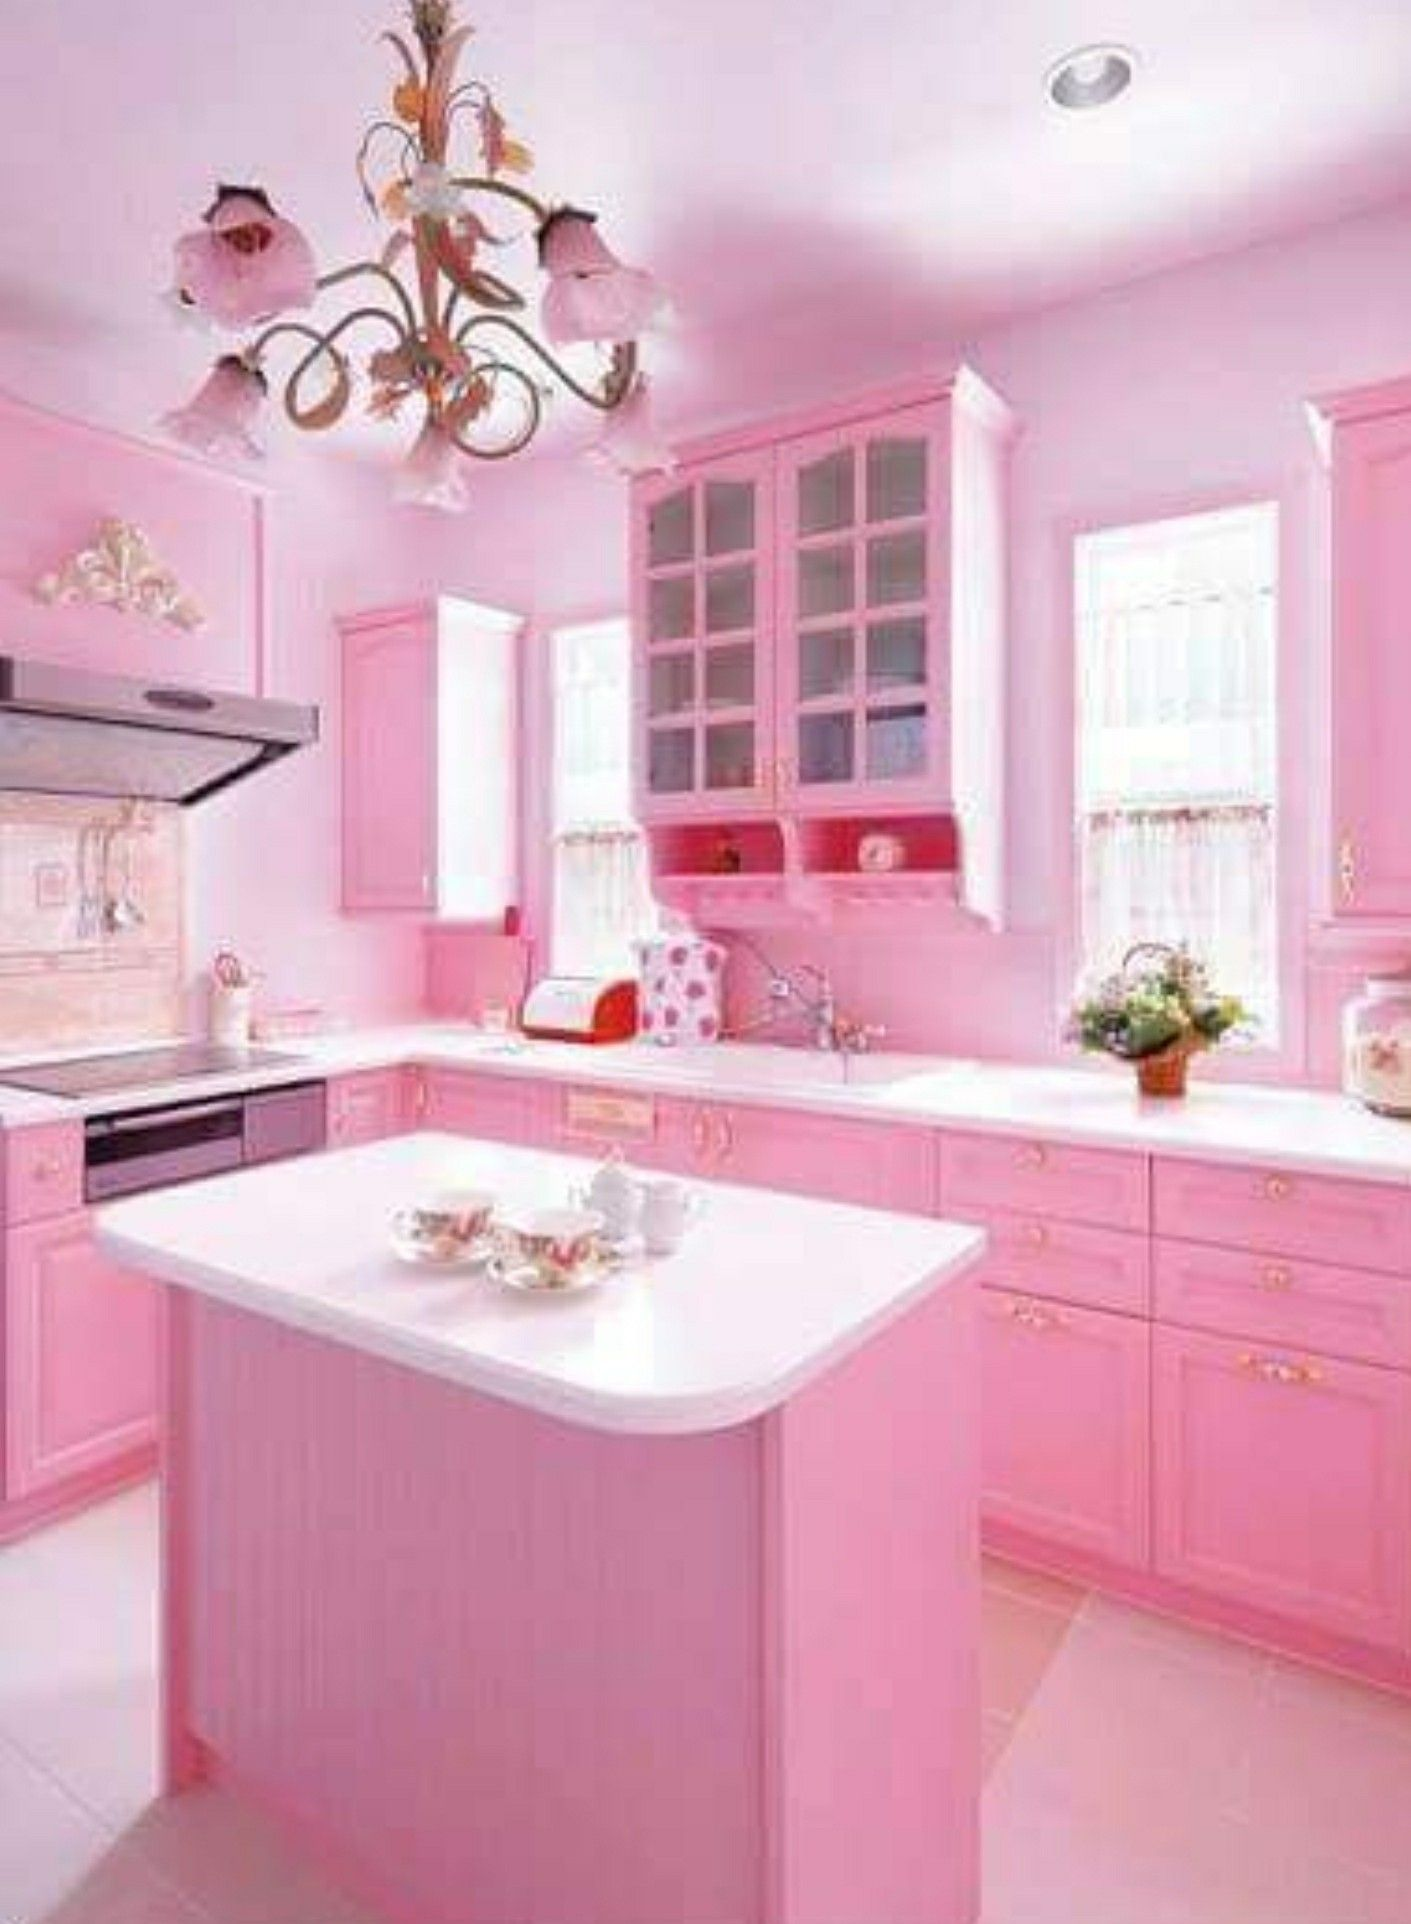 Pin by KHeather on ♥PASTEL PINK & Everything Pink♥ Pink